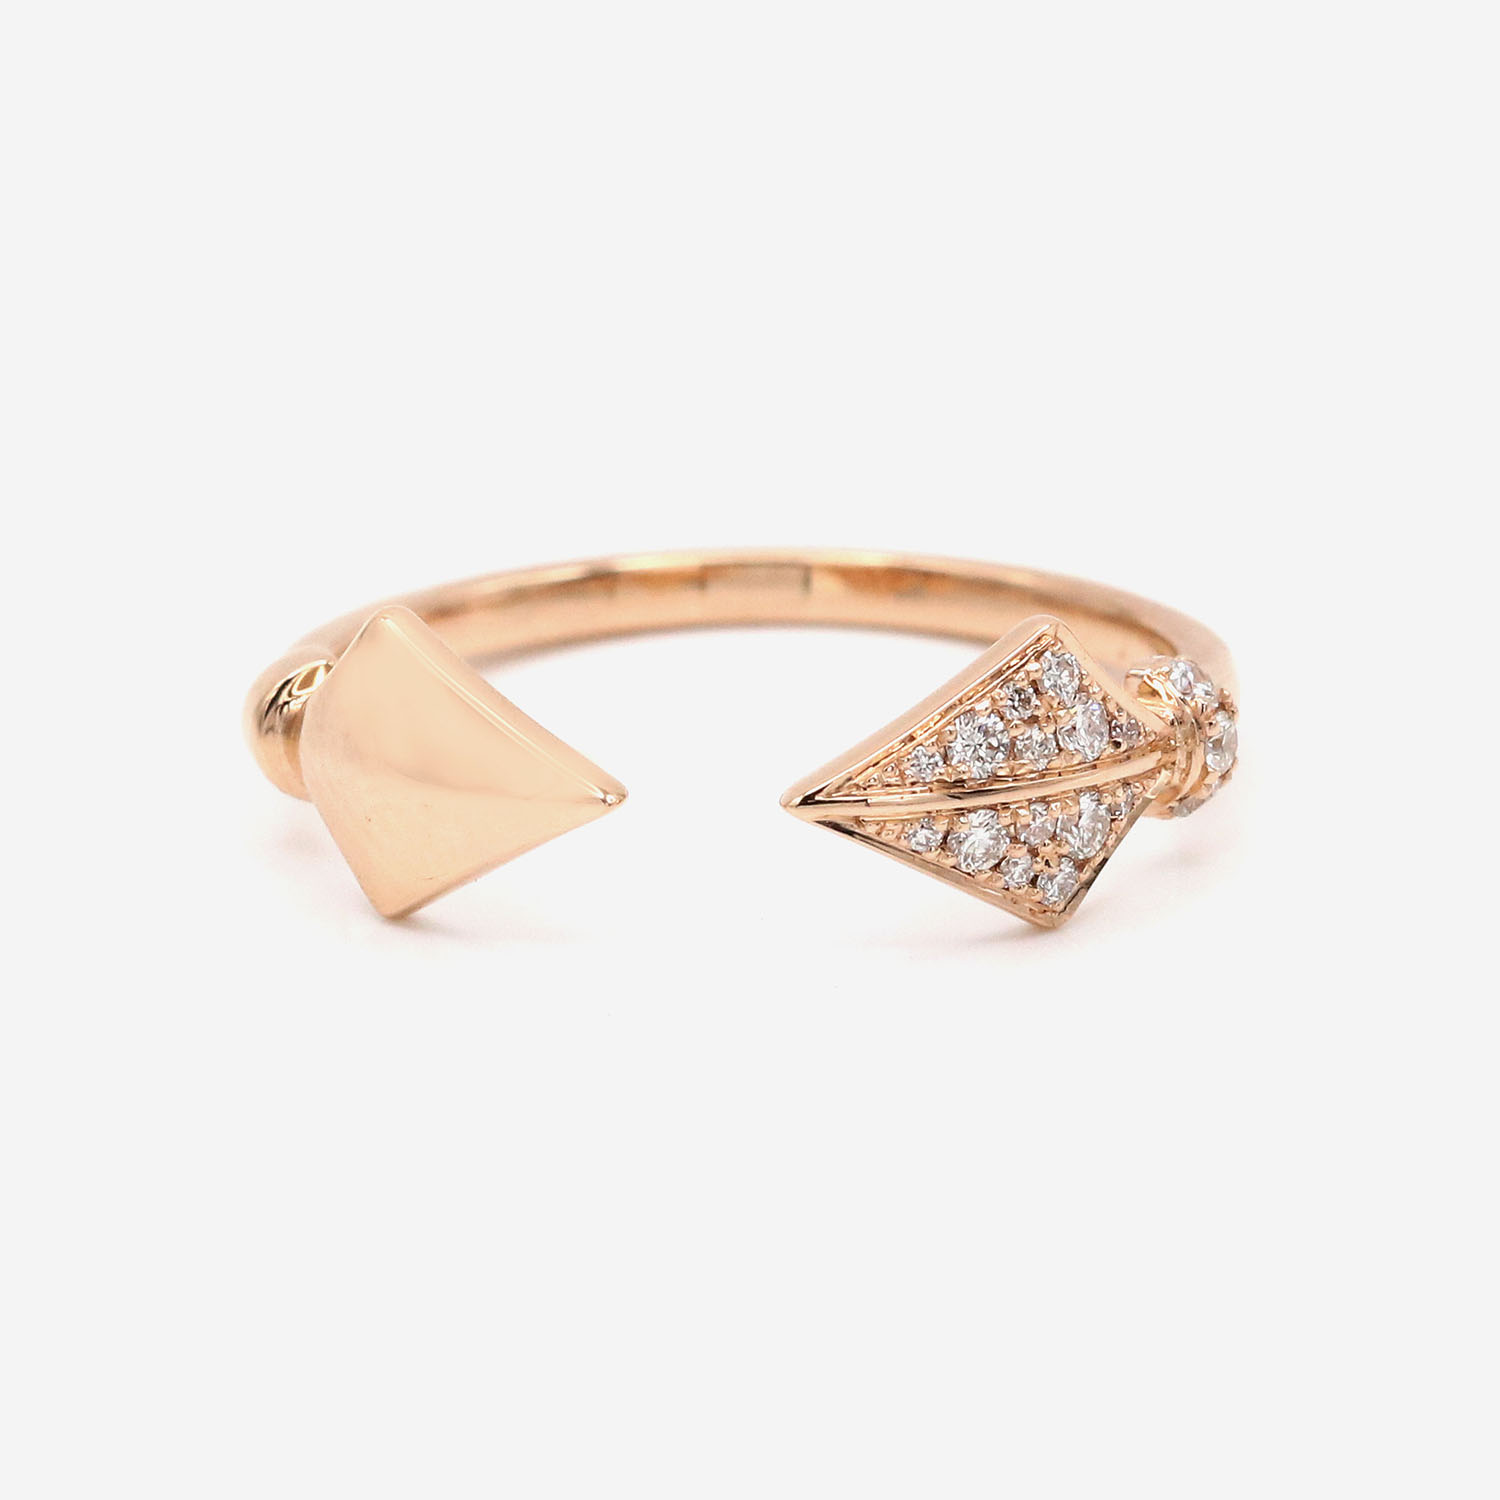 Warrior Princess Ring by Amira Karaouli on curated-crowd.com